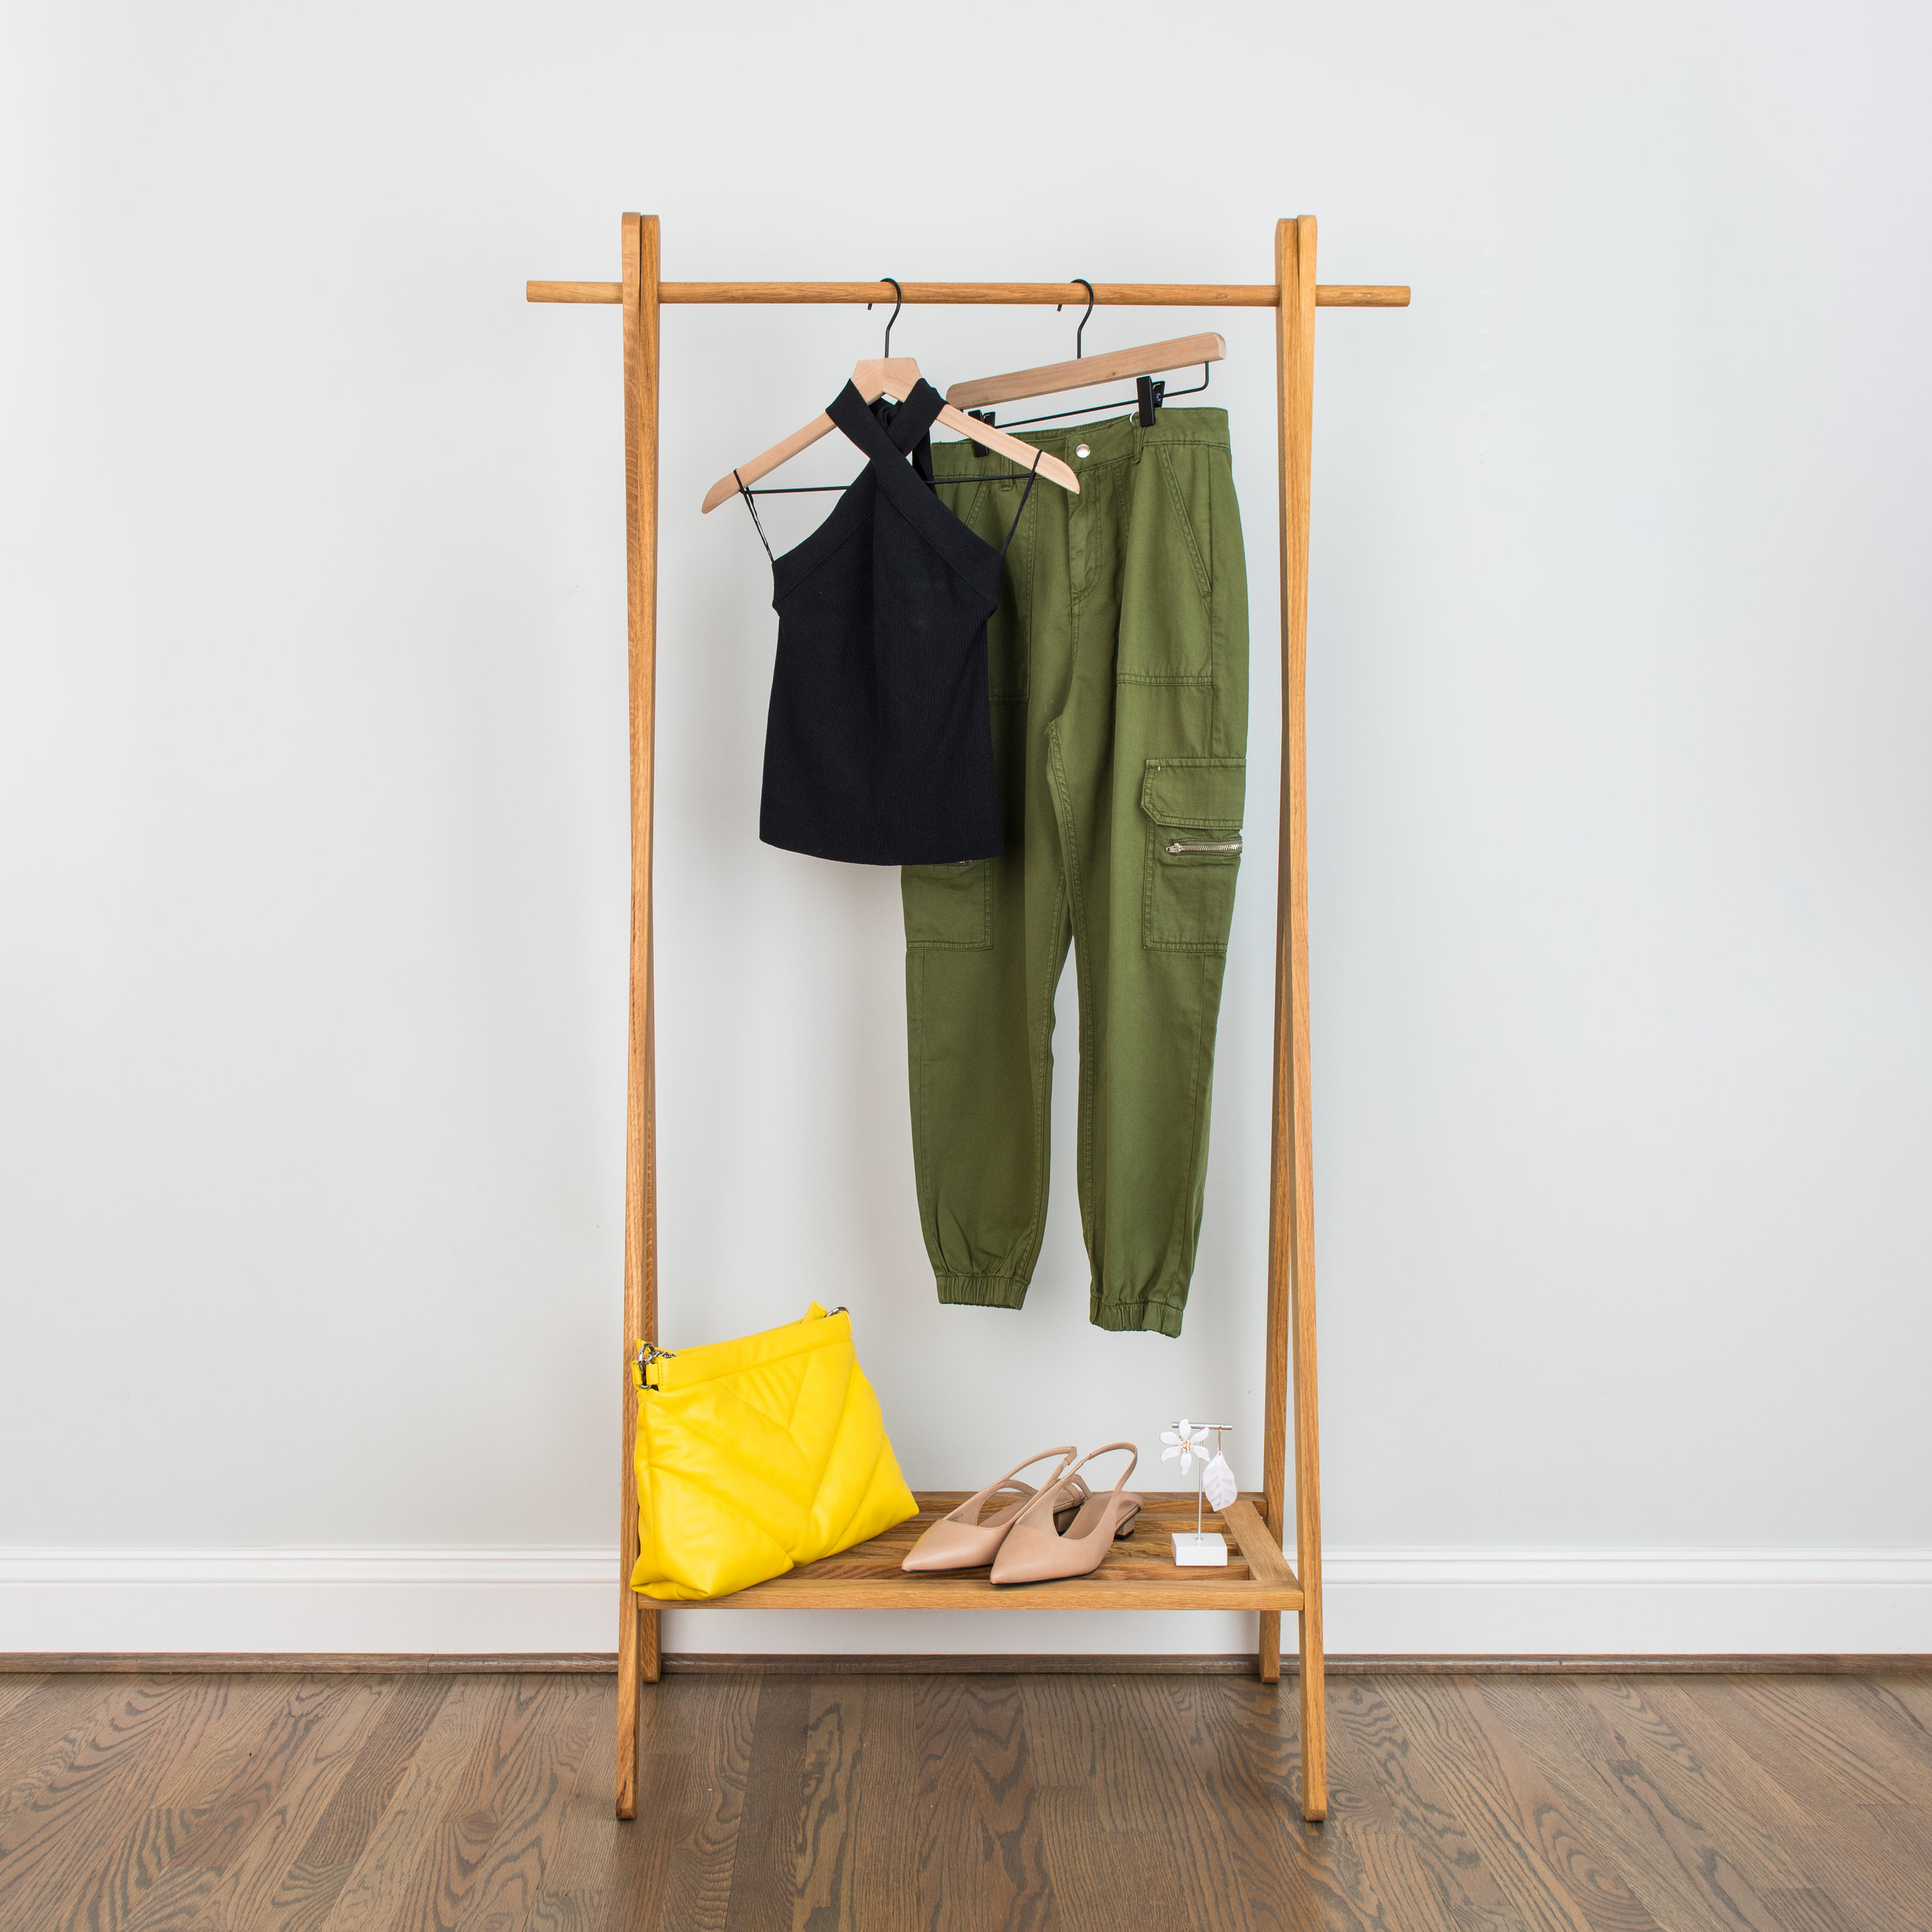 """cargo night - The cargo pant is the new """"jean"""" for a night out this Fall. Pair it with a sweater tank or halter and some slingbacks and it's perfect for a dinner out.Knit Halter/Tank: 1 // 2 // 3Green Cargo Pants: 1 // 2 // 3Slingbacks: 1 // 2 // 3Mismatched Earrings: 1 // 2 // 3Oversized Clutch: 1 // 2 // 3"""